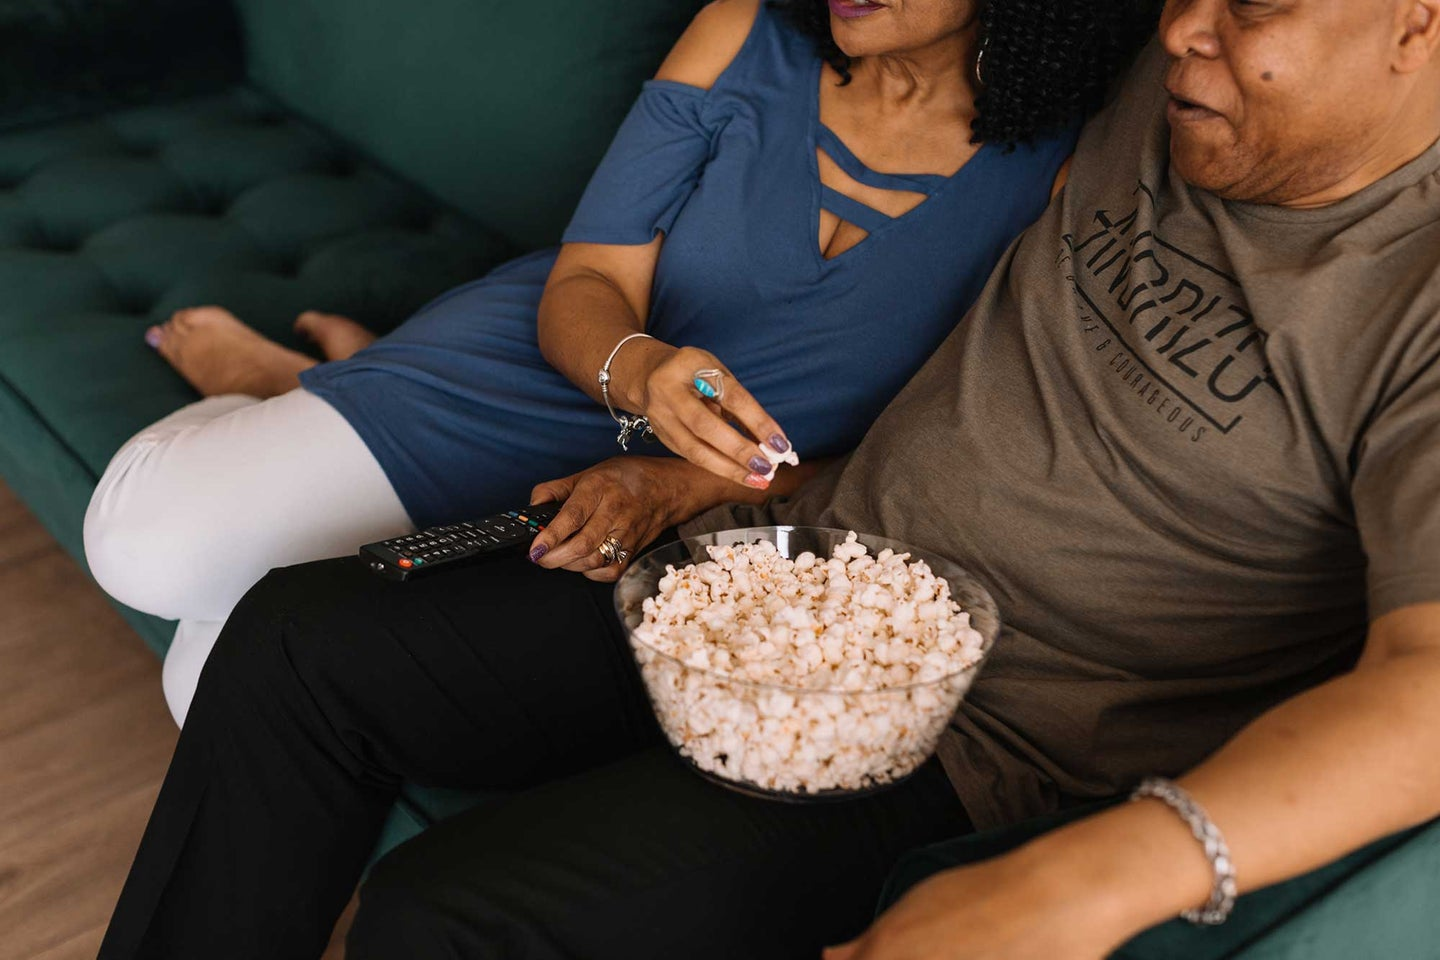 Two people eating popcorn on the couch